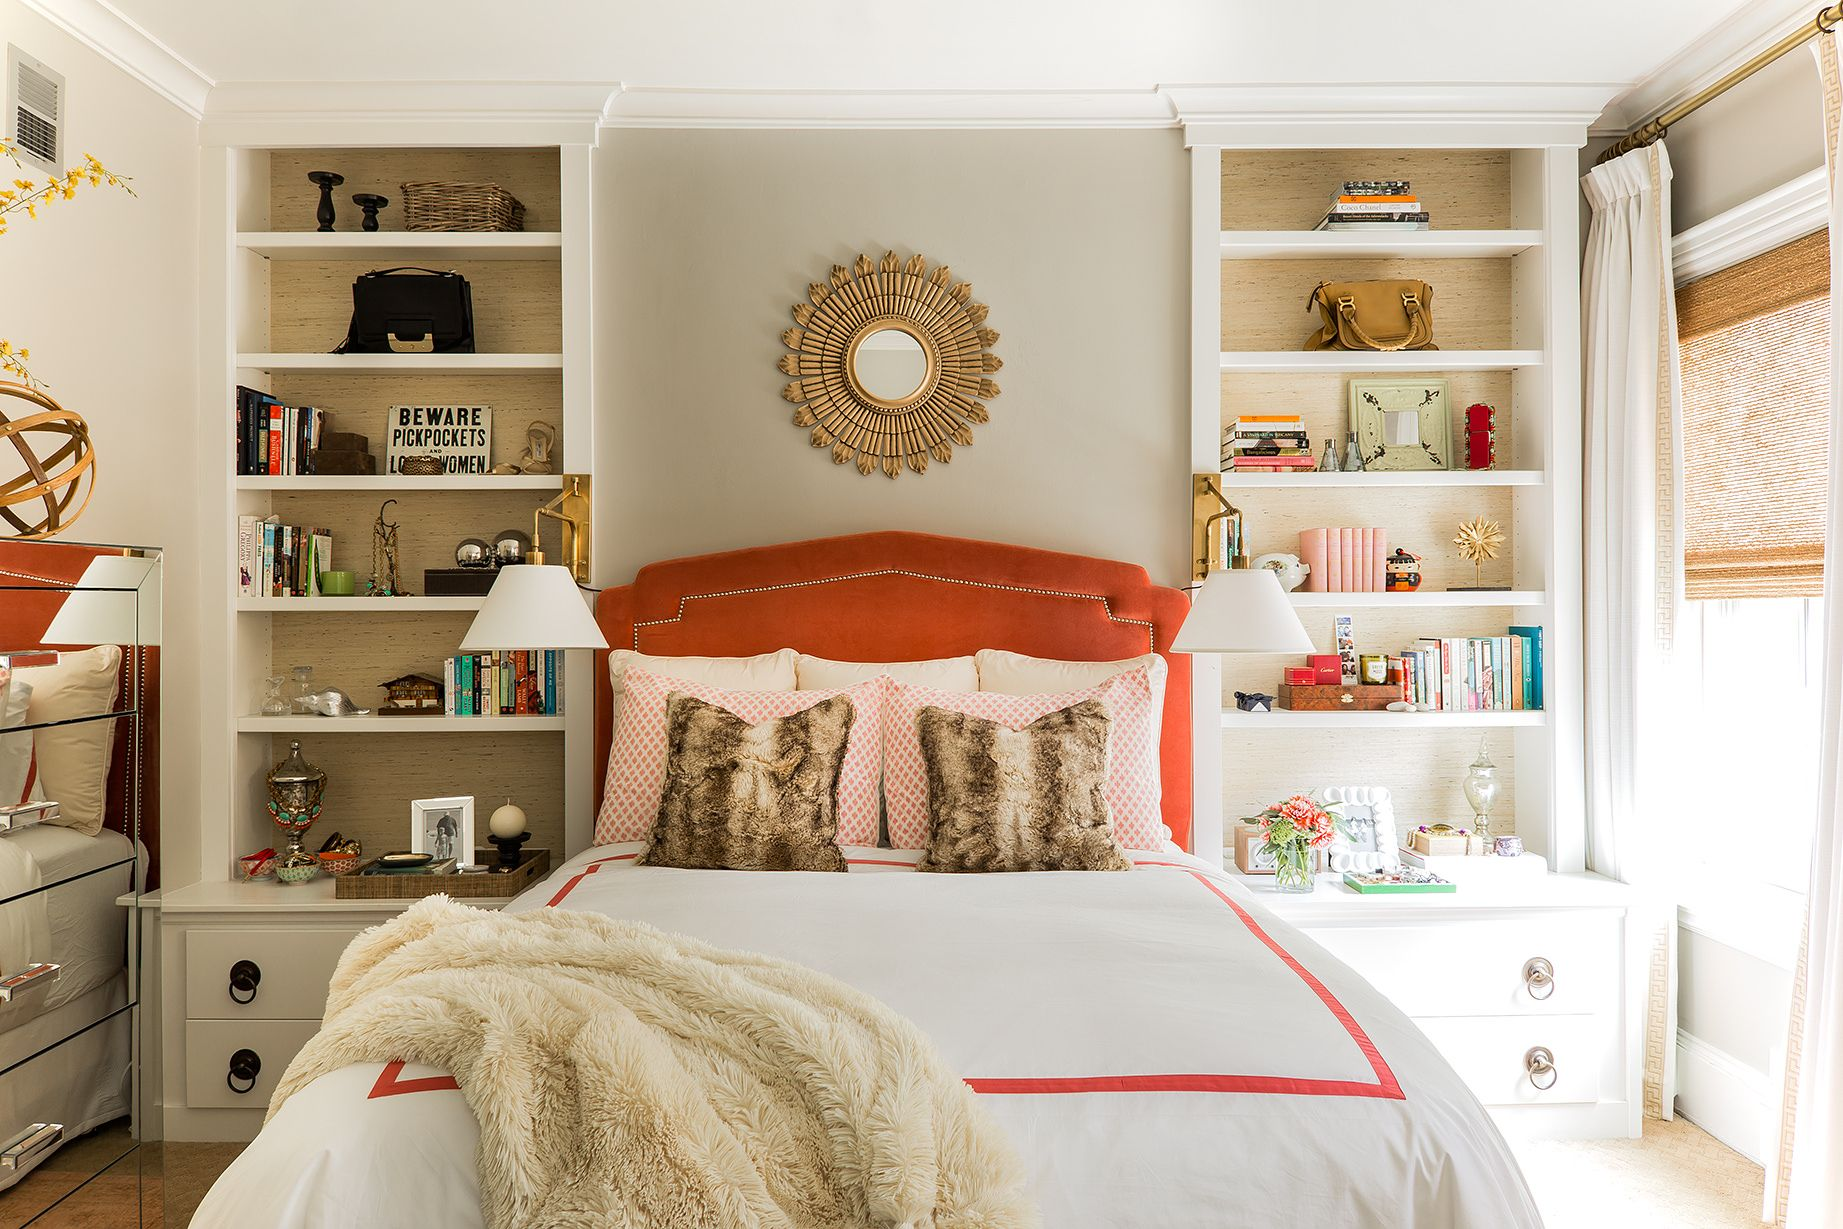 17 Small Bedroom Design Ideas   How to Decorate a Small Bedroom Courtesy of Erin Gates Design